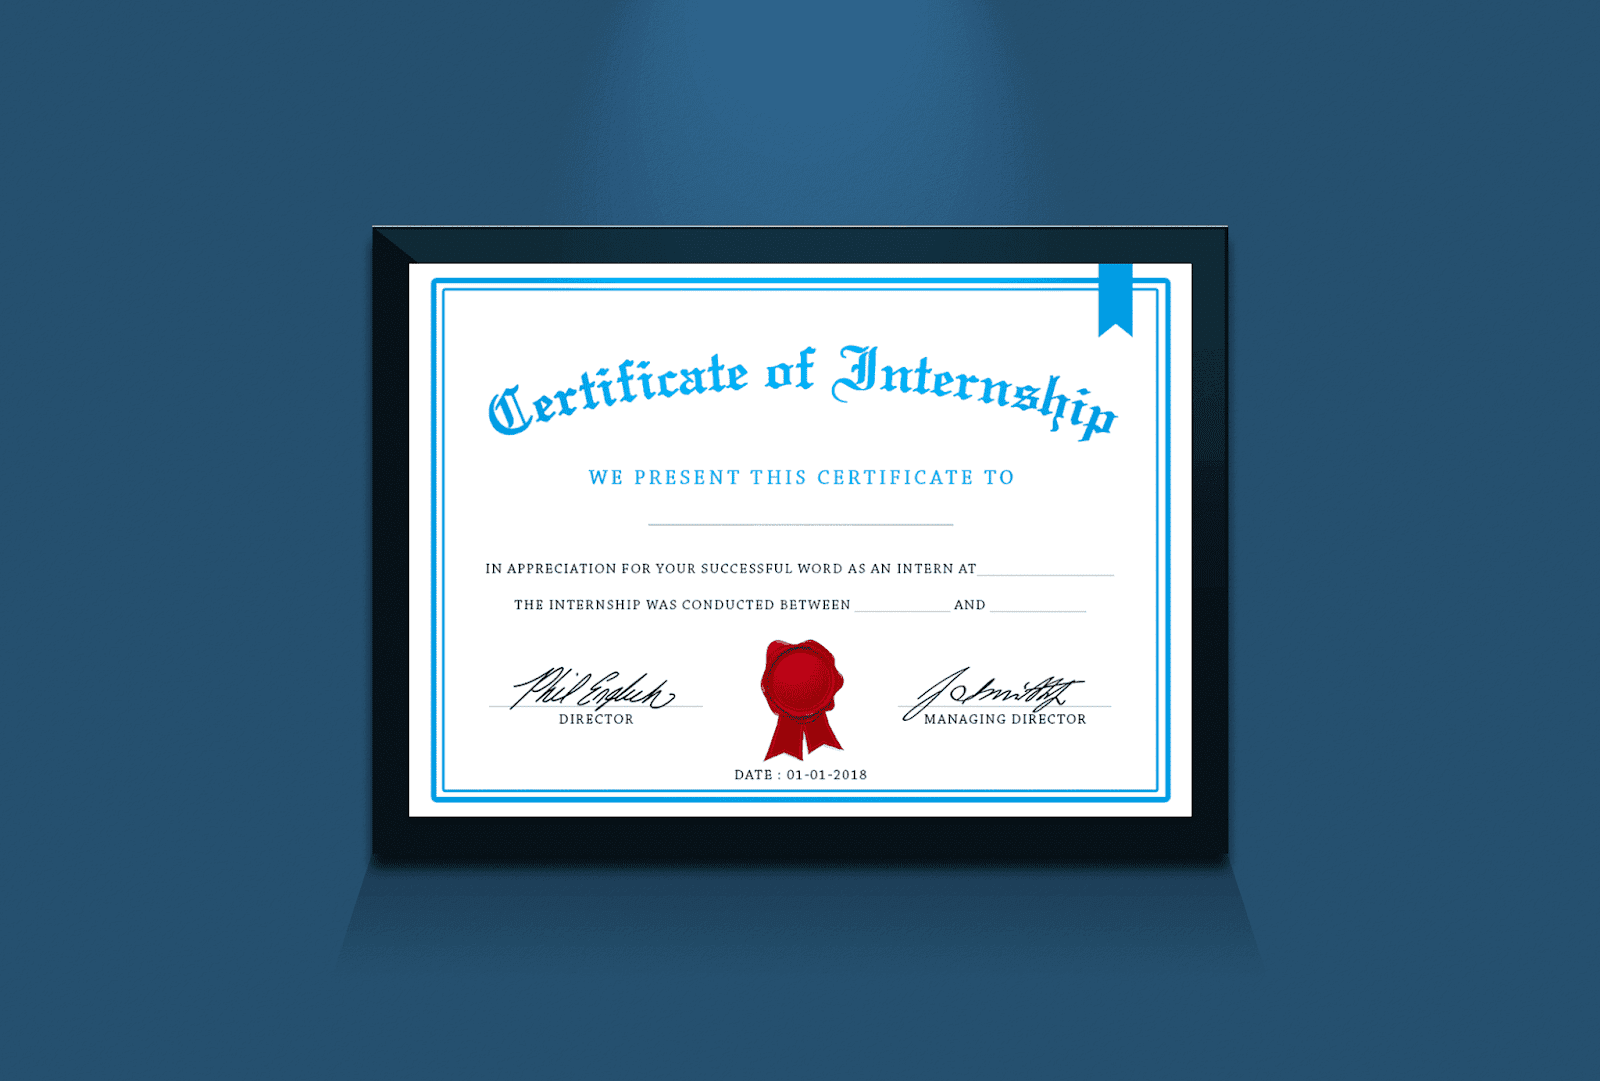 Certificate Of Internship Design Idea In Photoshop